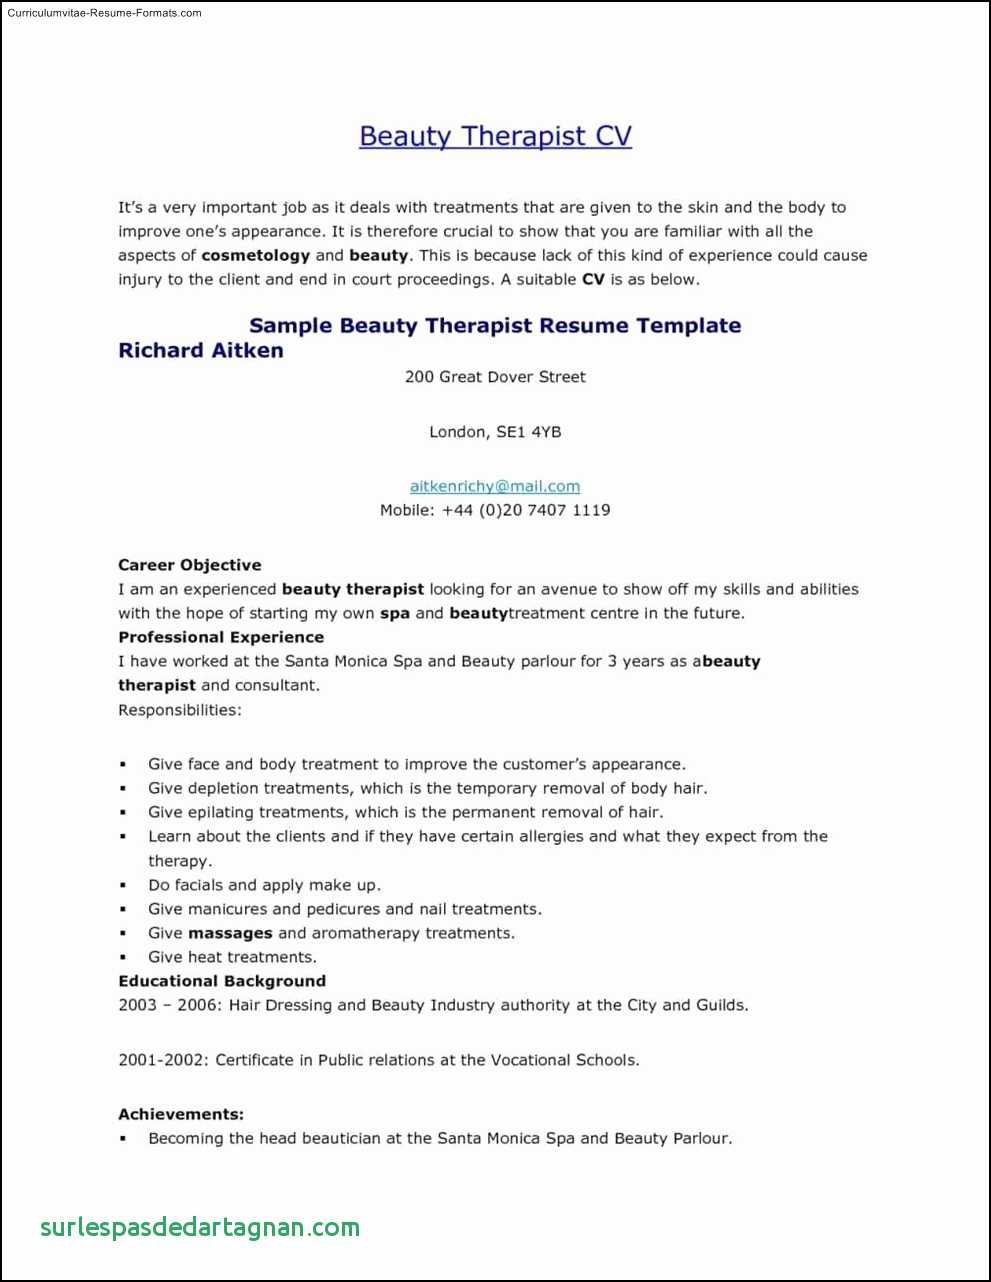 Cv Template Youth Central Good resume examples, Resume